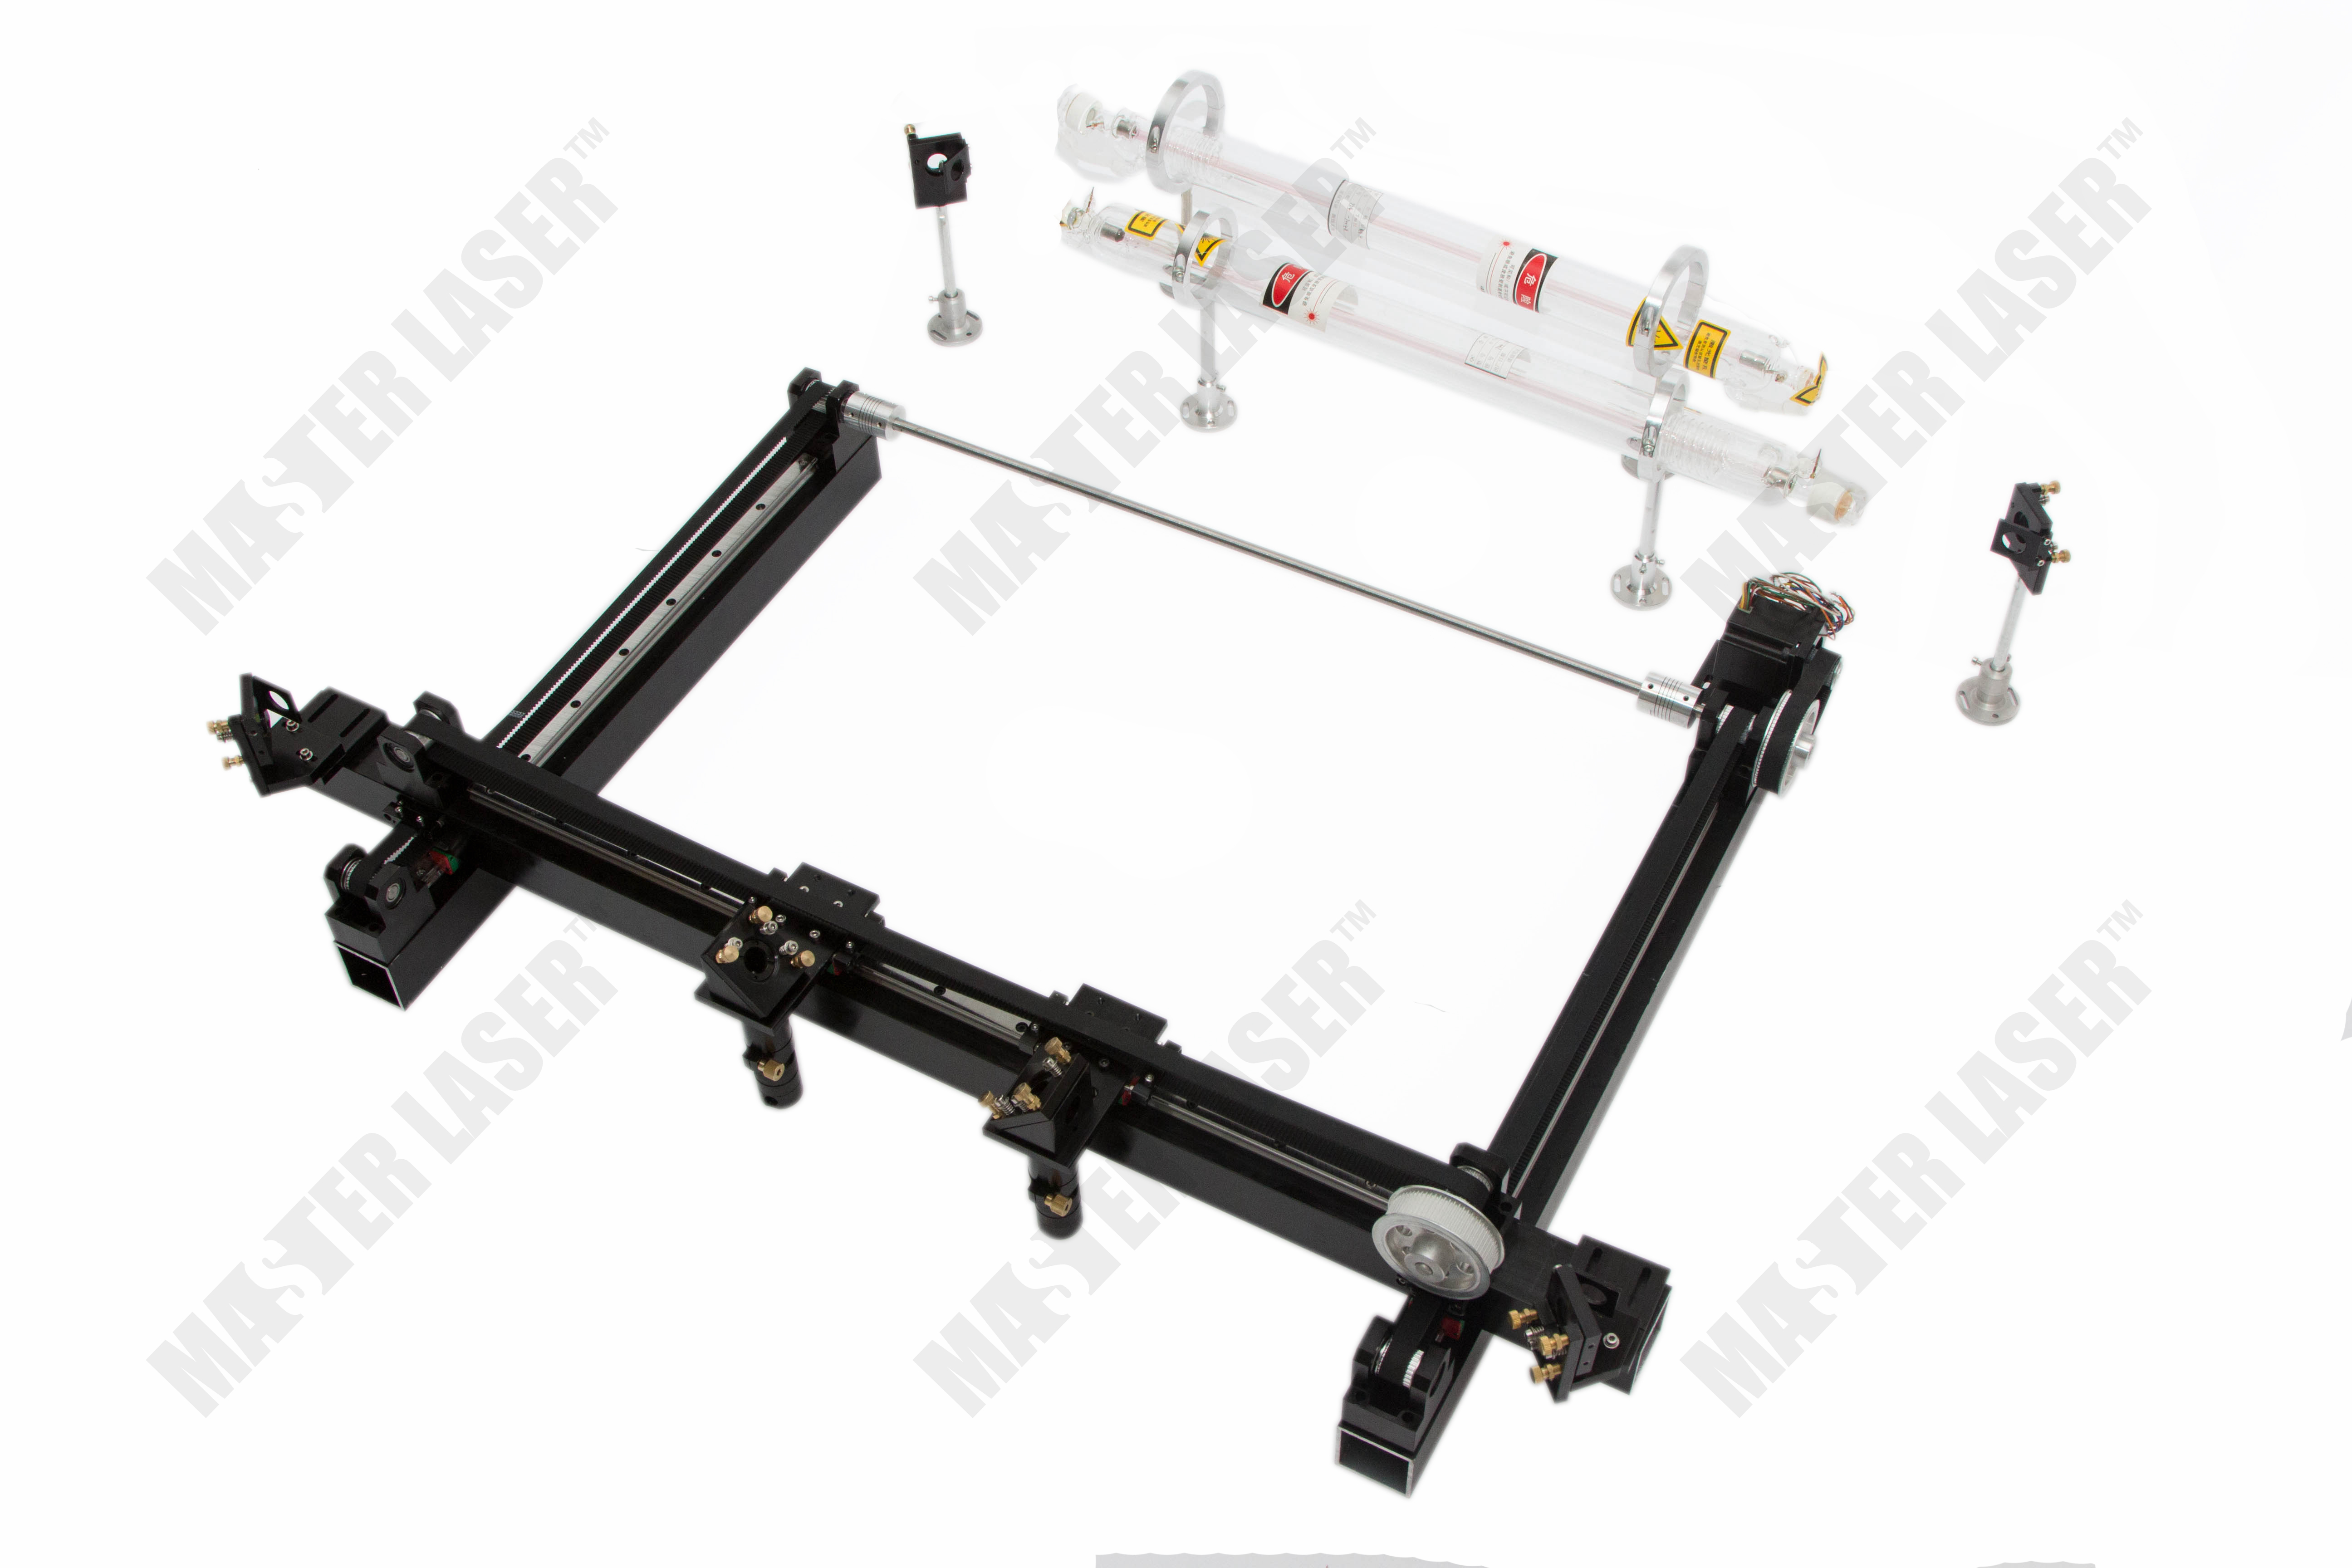 Best Quality Work Table 100*80 CO2 Laser Cutting Machine for Wood Crafts Mirror Mount 2 Laser Heads economic al case of 1064nm fiber laser machine parts for laser machine beam combiner mirror mount light path system